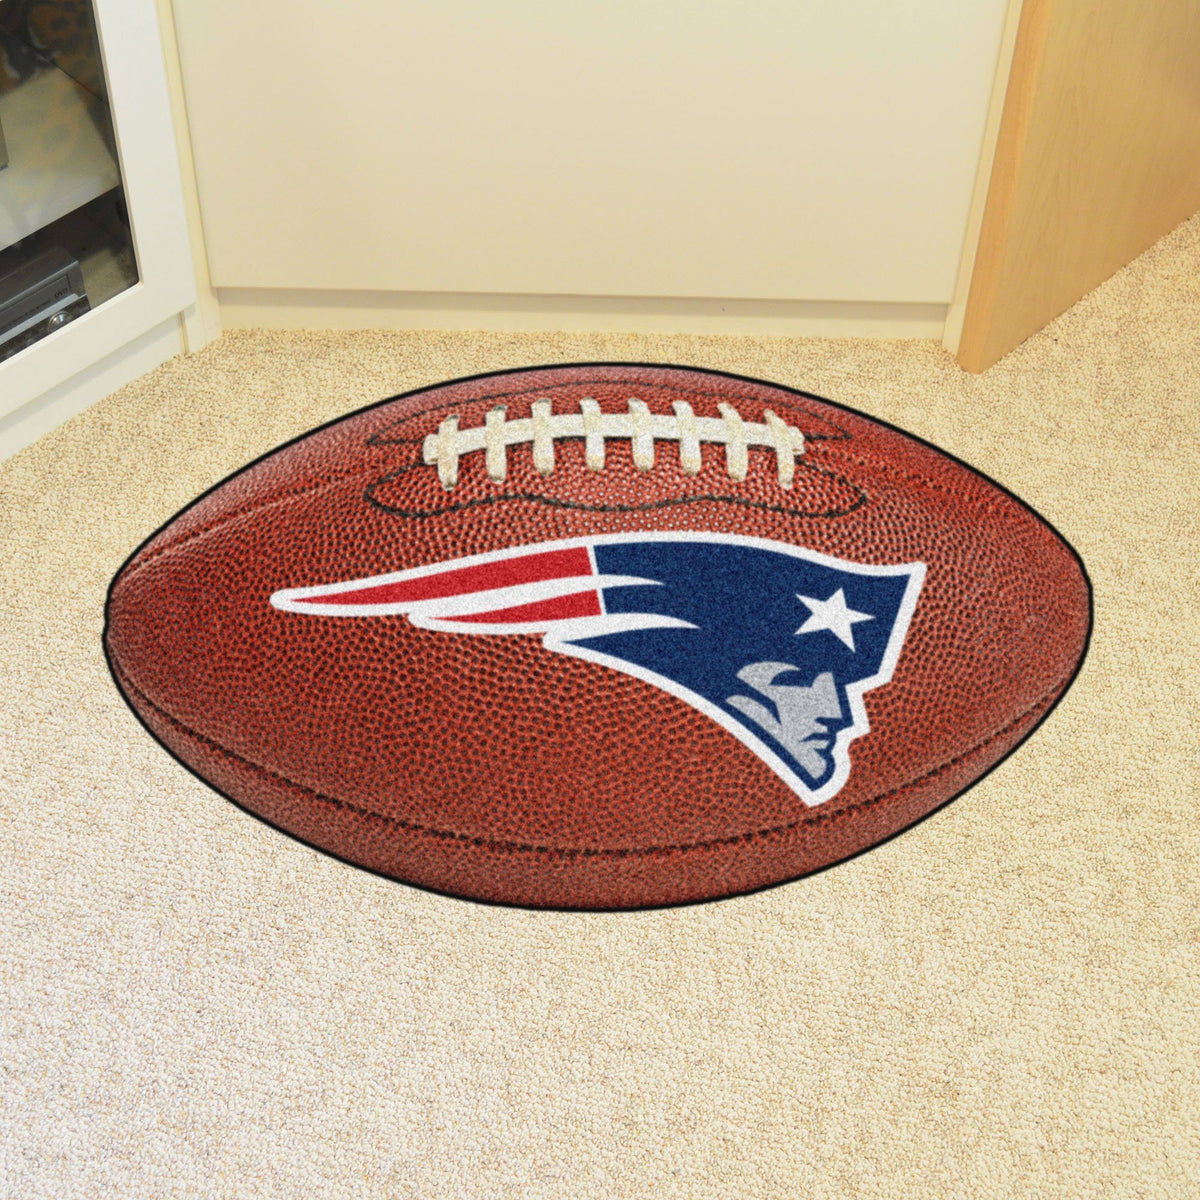 NFL - Football Mat NFL Mats, Custom Shape Rugs, Football Mat, NFL, Home Fan Mats New England Patriots